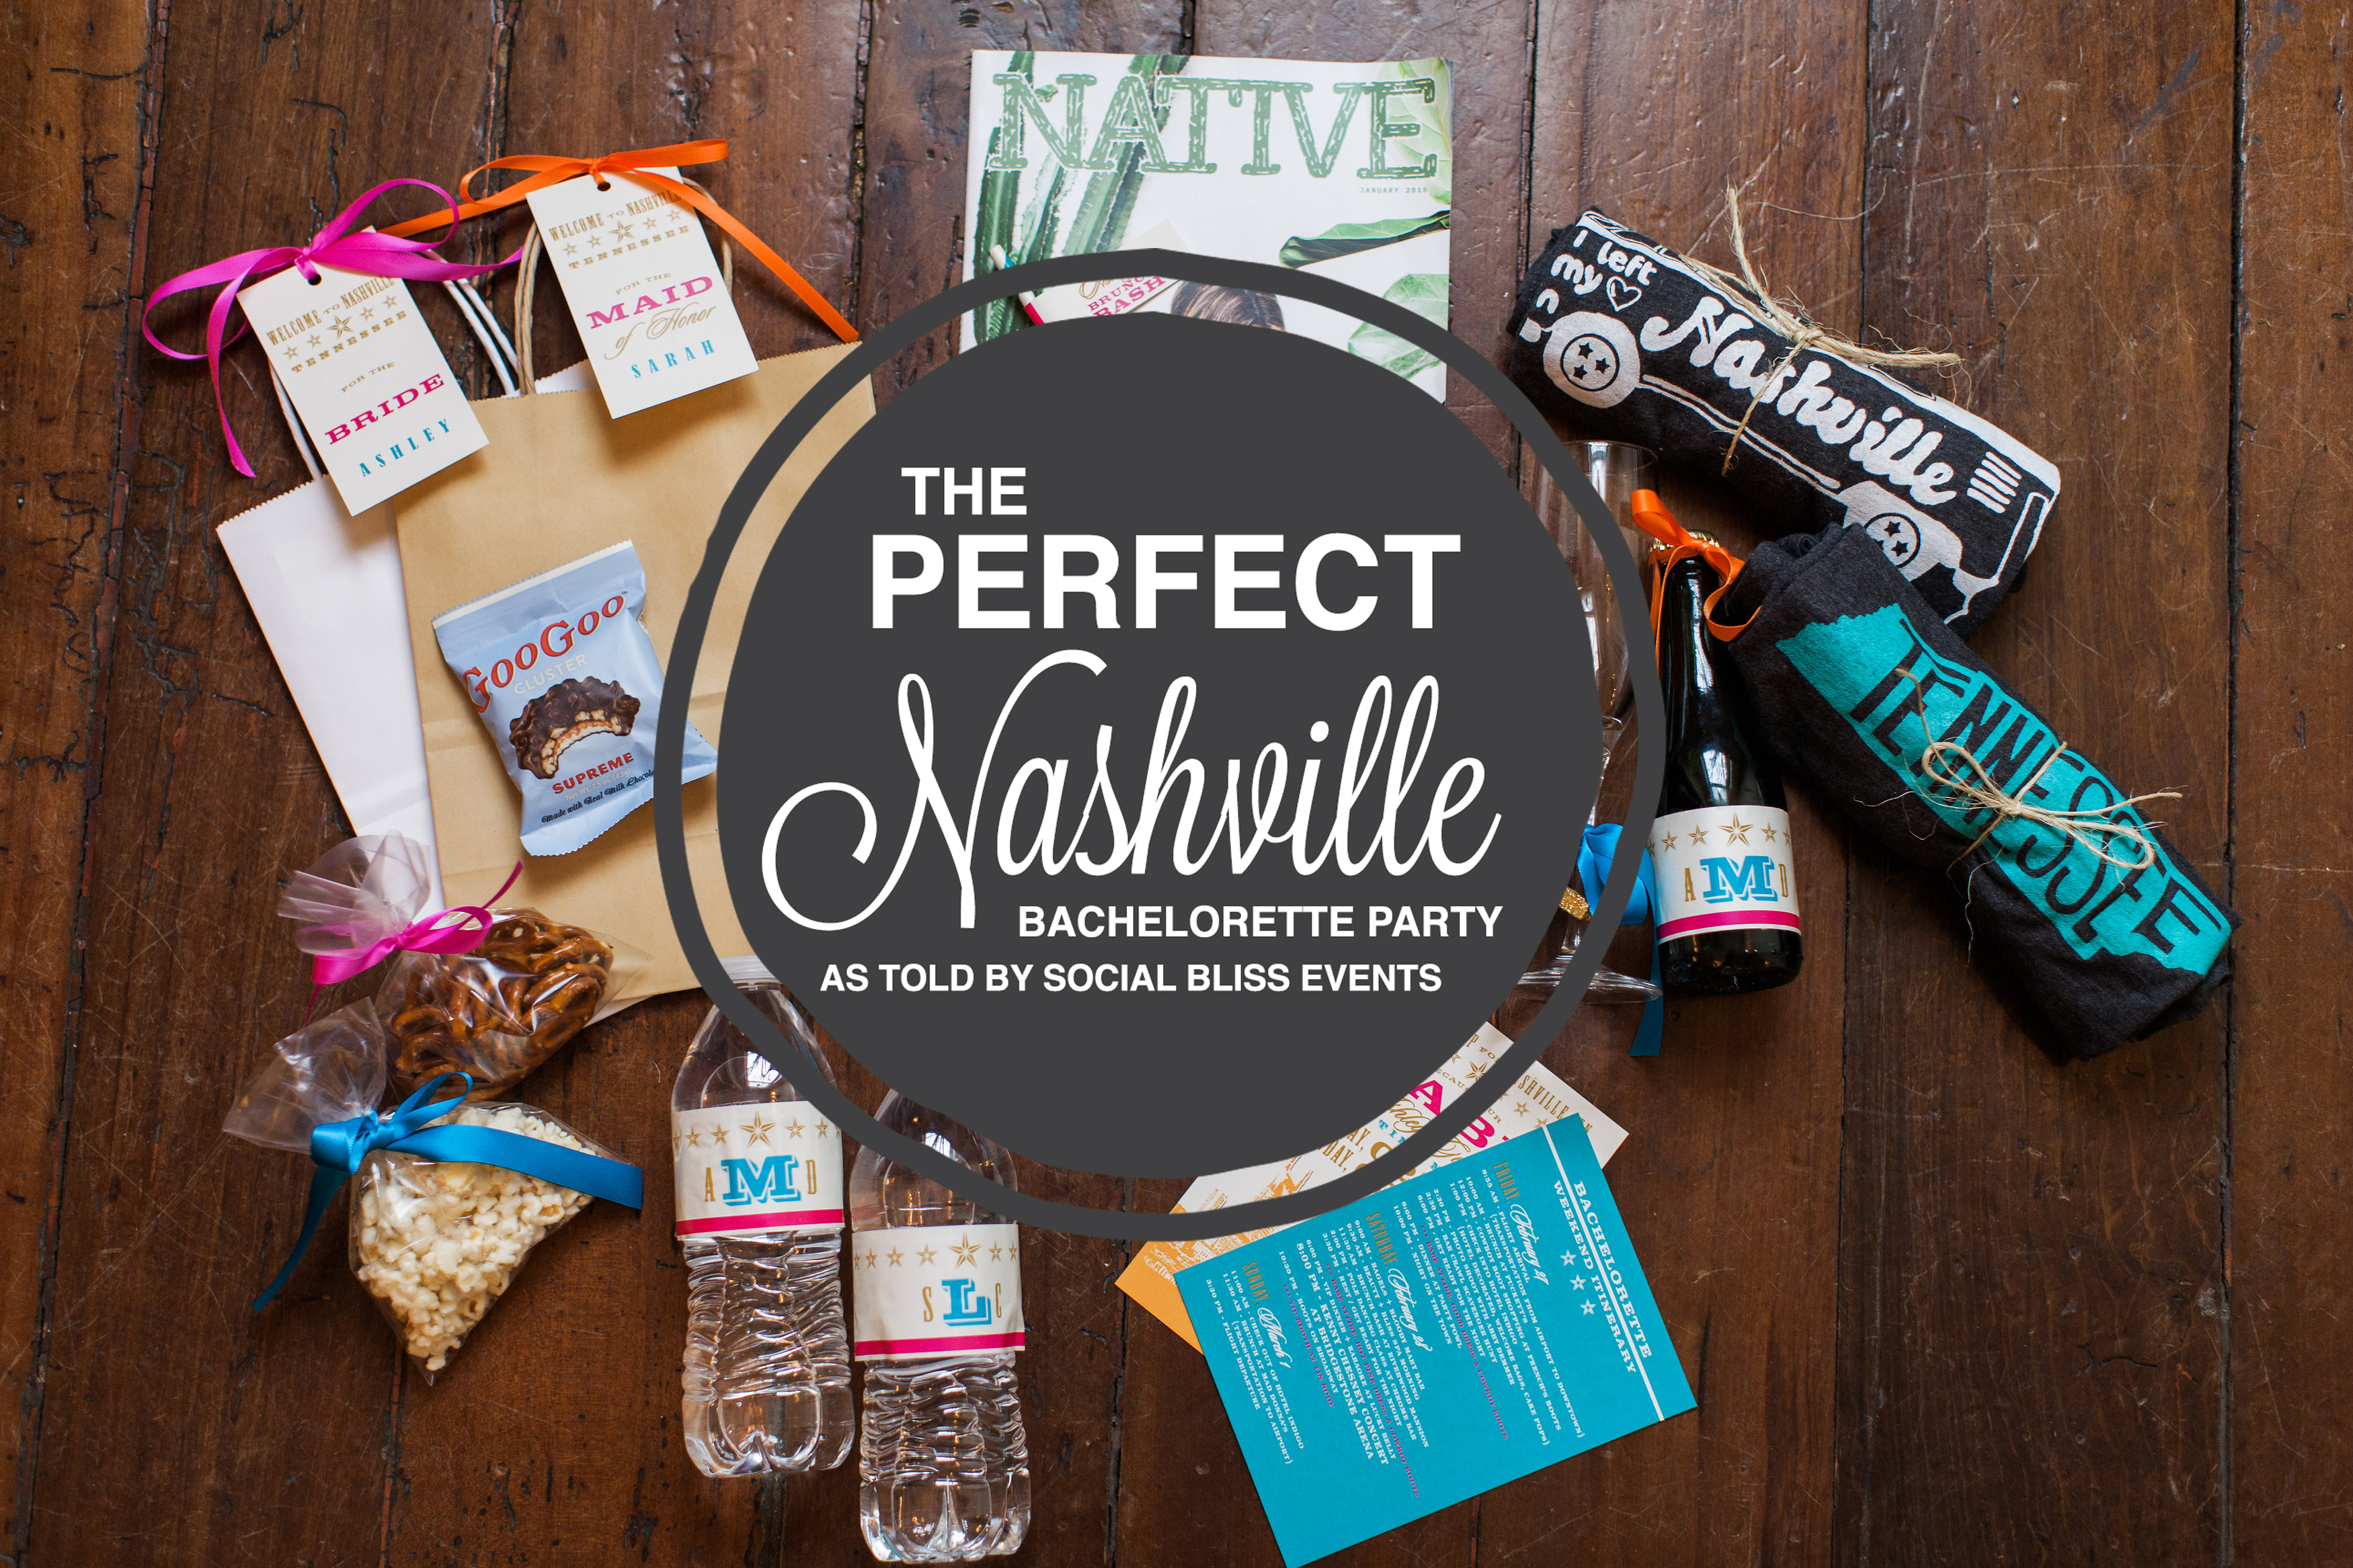 The Perfect Nashville Bachelorette Party As Told By Social